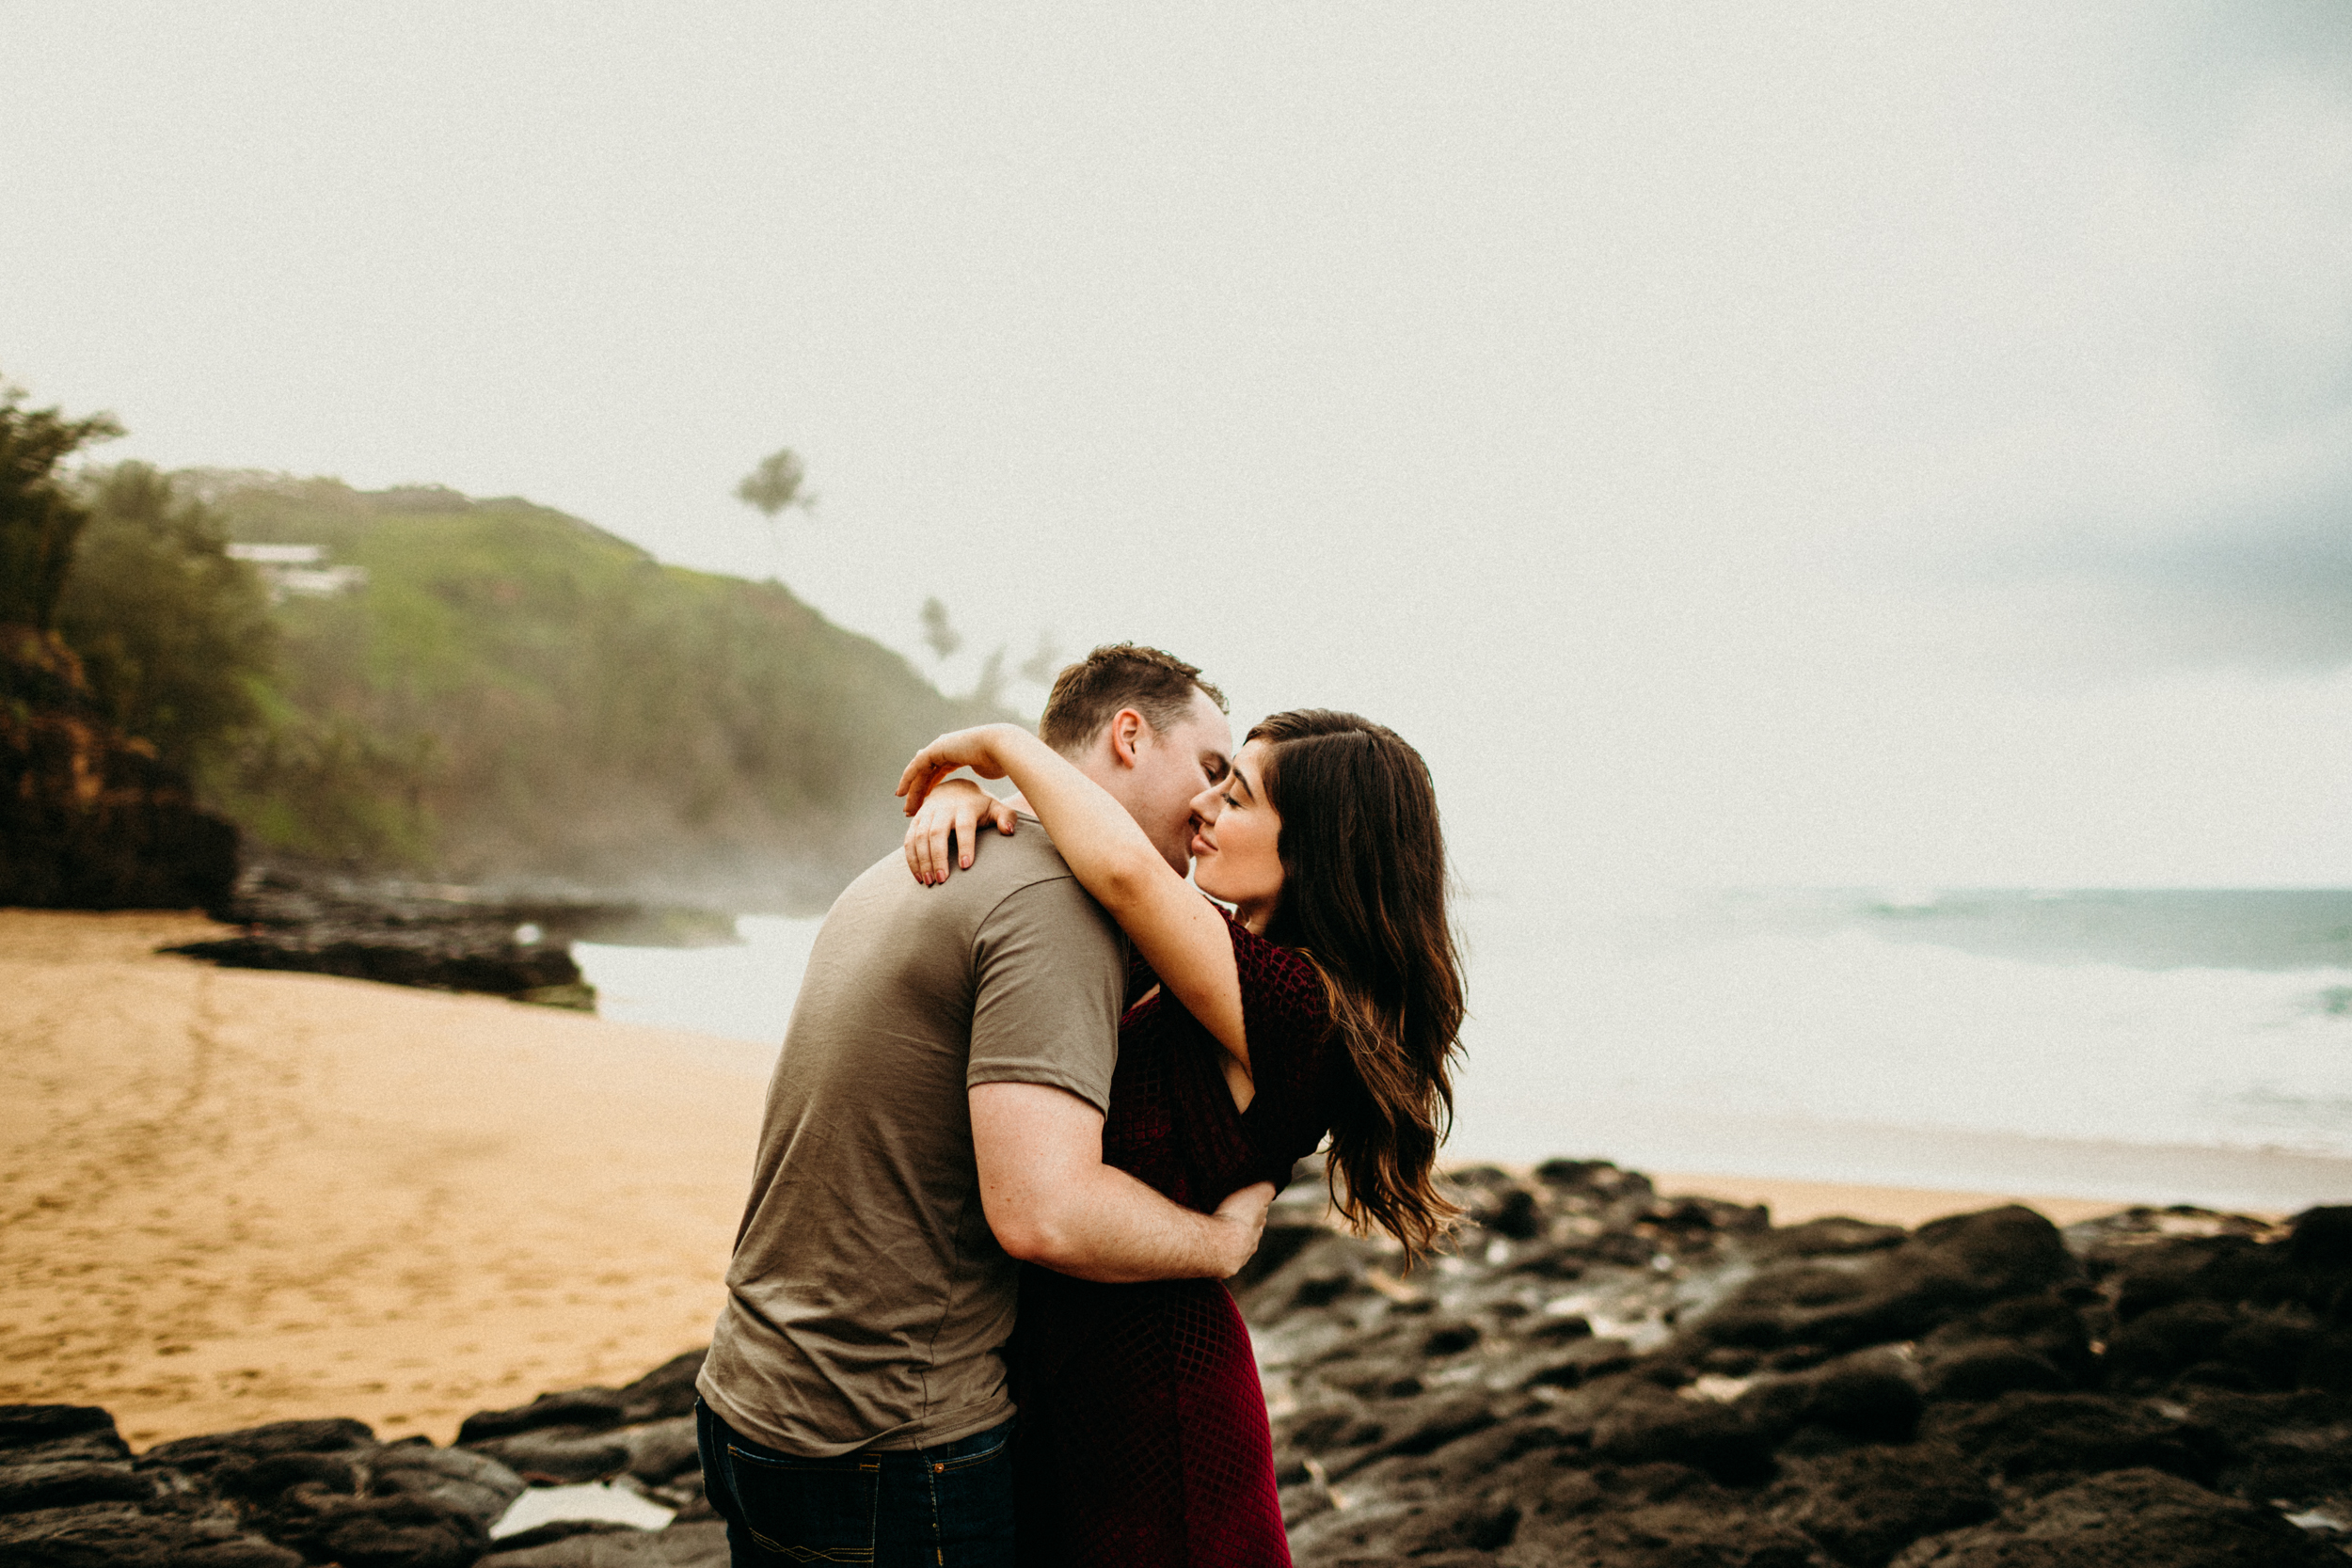 Lauren Dixon Photography-Kauai Honeymoon Session 10.jpg